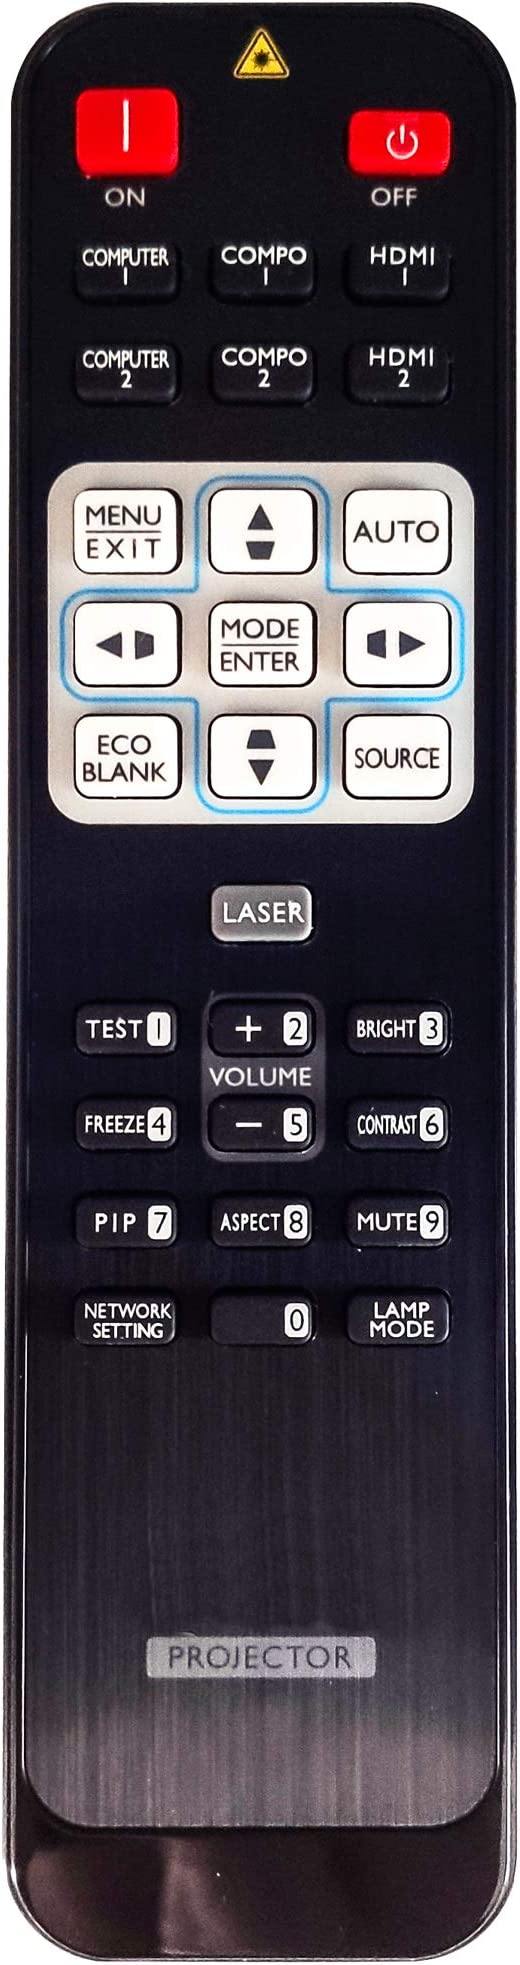 ghdonat.com Remote Control for BenQ MH741 Projector with Laser ...